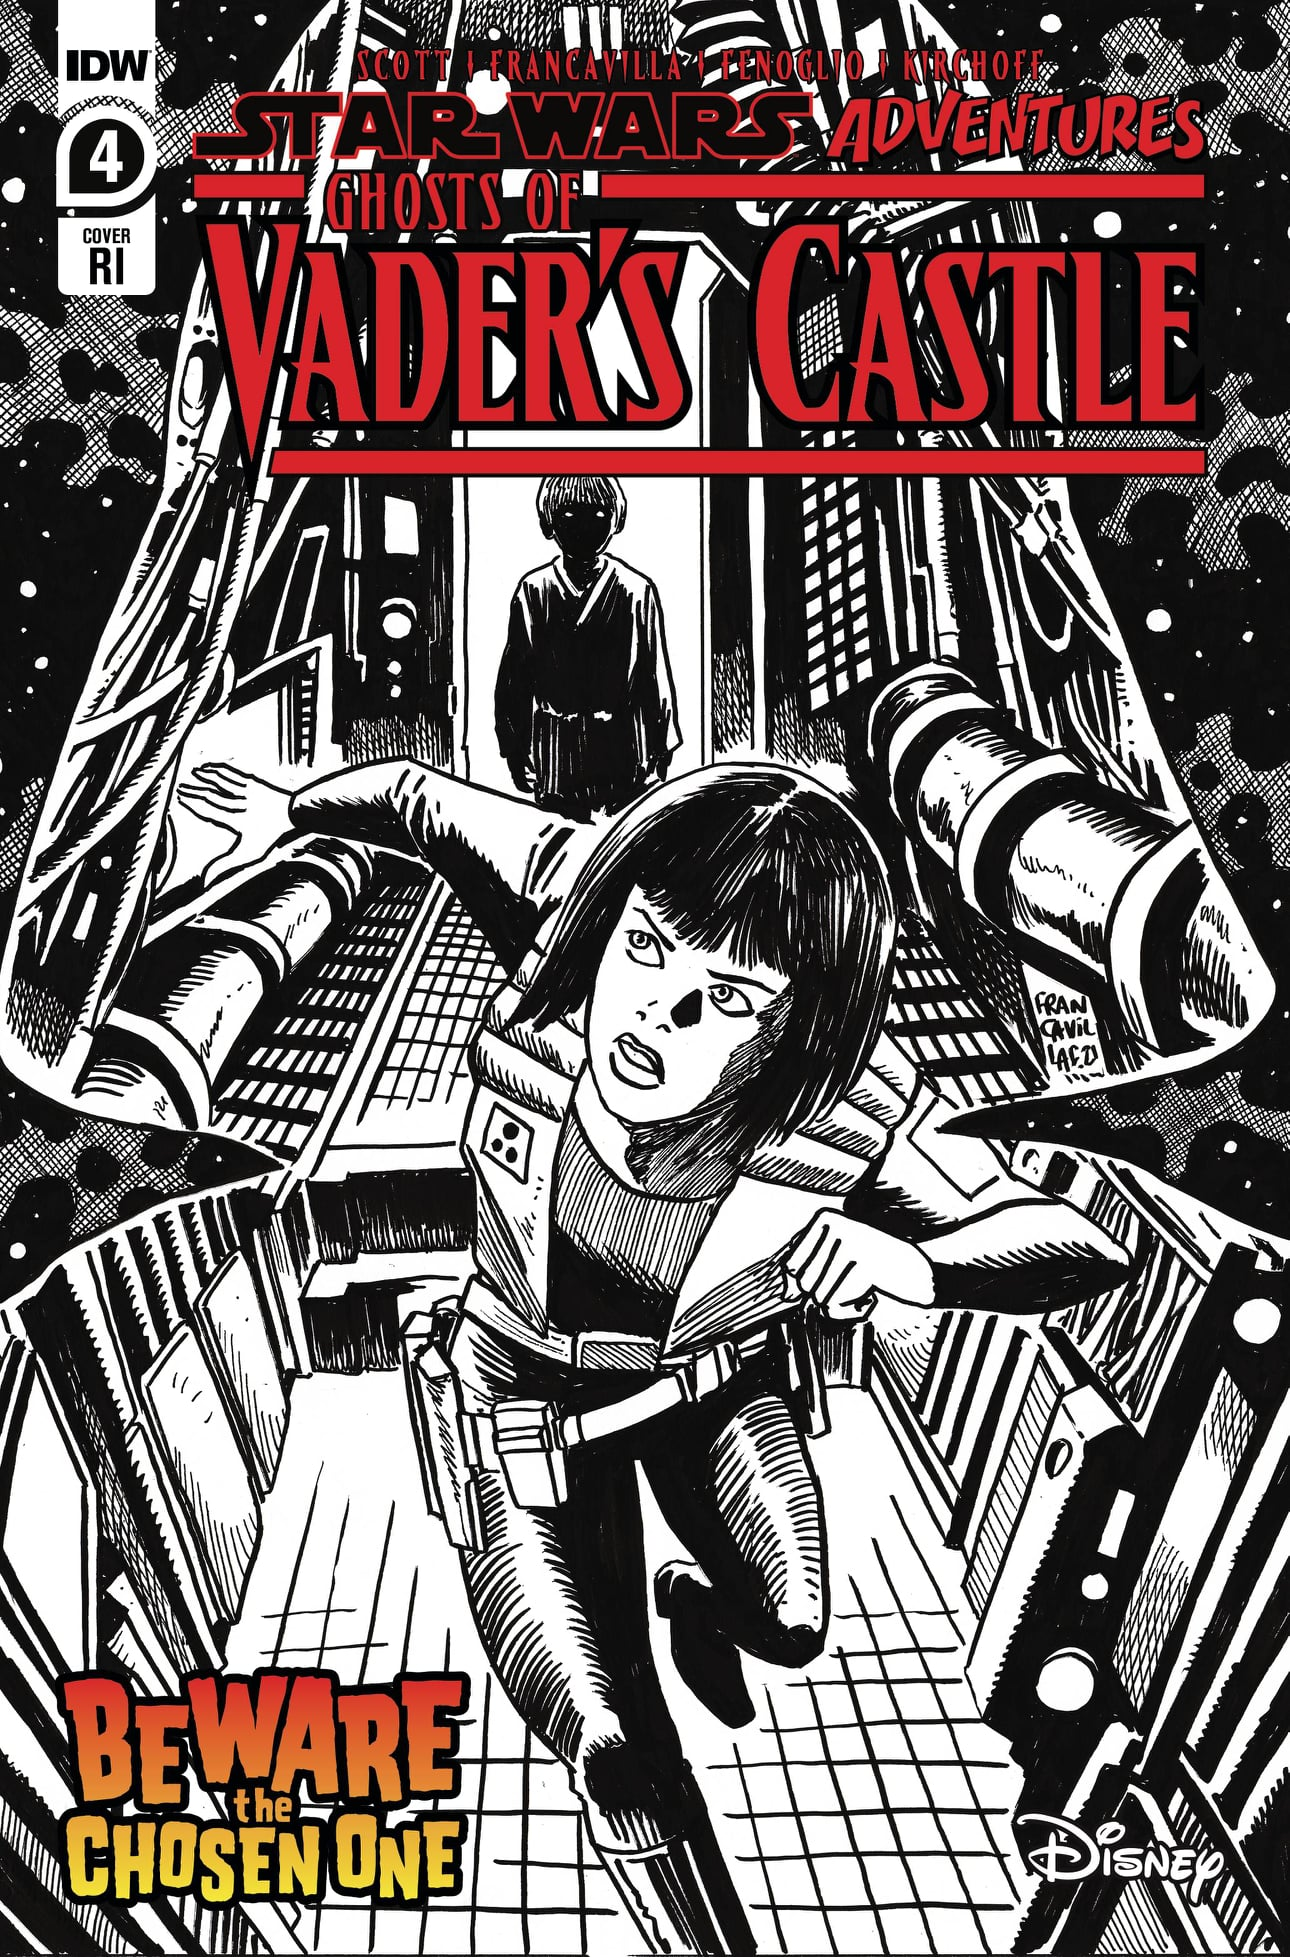 Star Wars Adventures: Ghosts of Vader's Castle 4 - Retail Incentive Cover